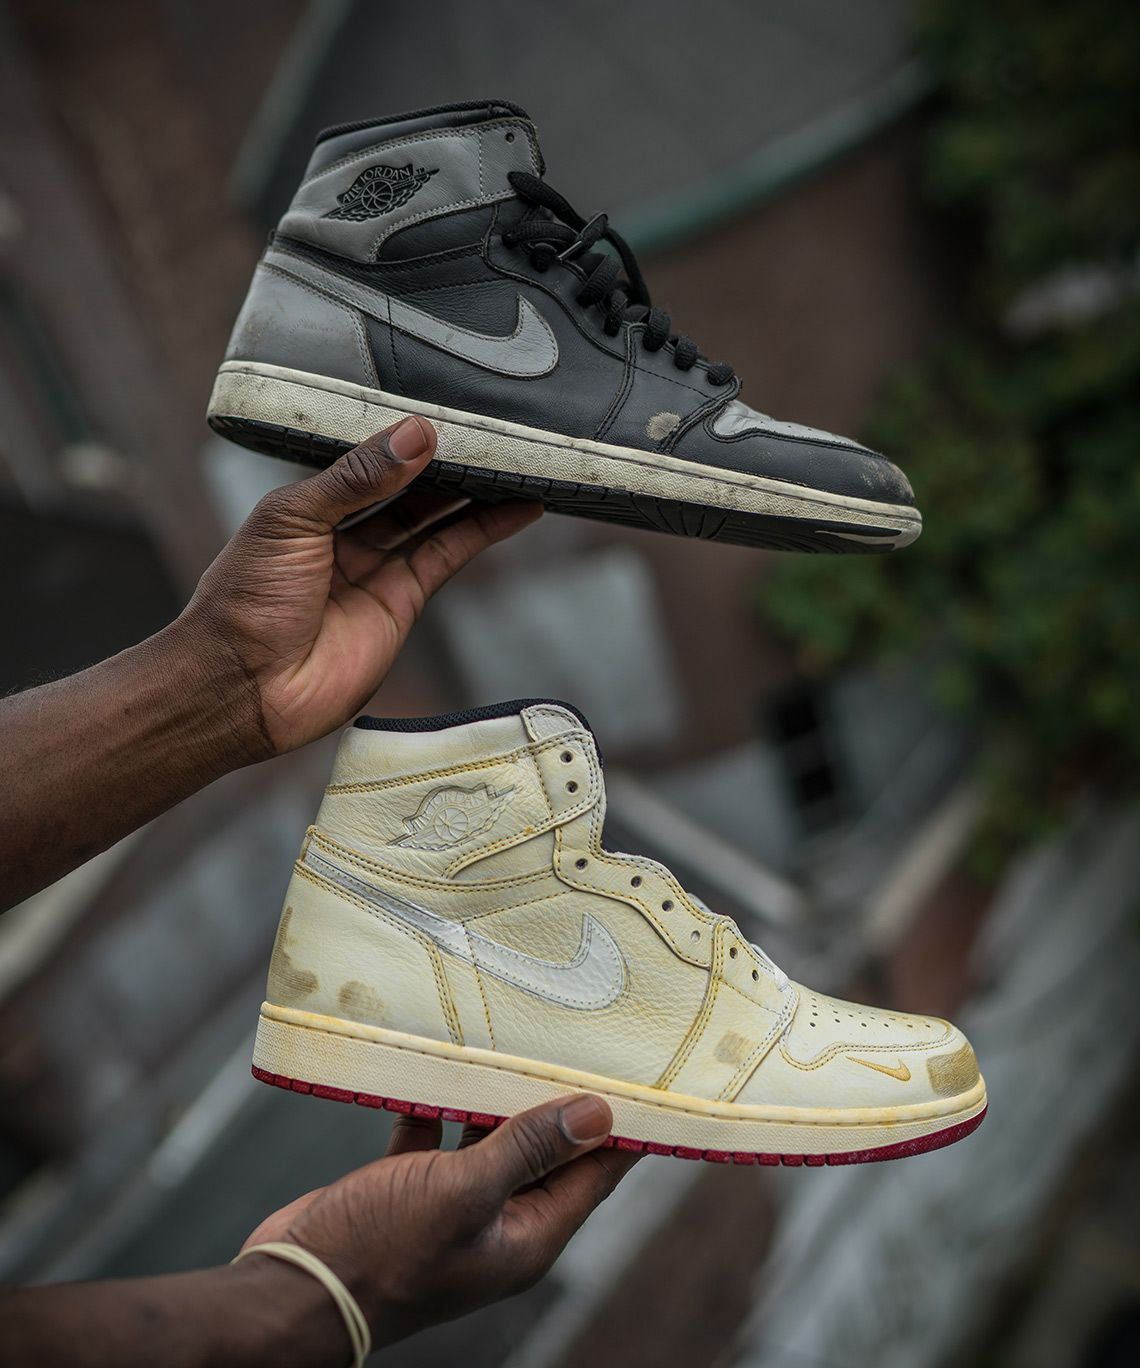 af5322c7a33317 Nigel Sylvester Reveals The Destroyed Air Jordan 1s That Inspired His  Collaboration  thatdope  sneakers  luxury  dope  fashion  trending